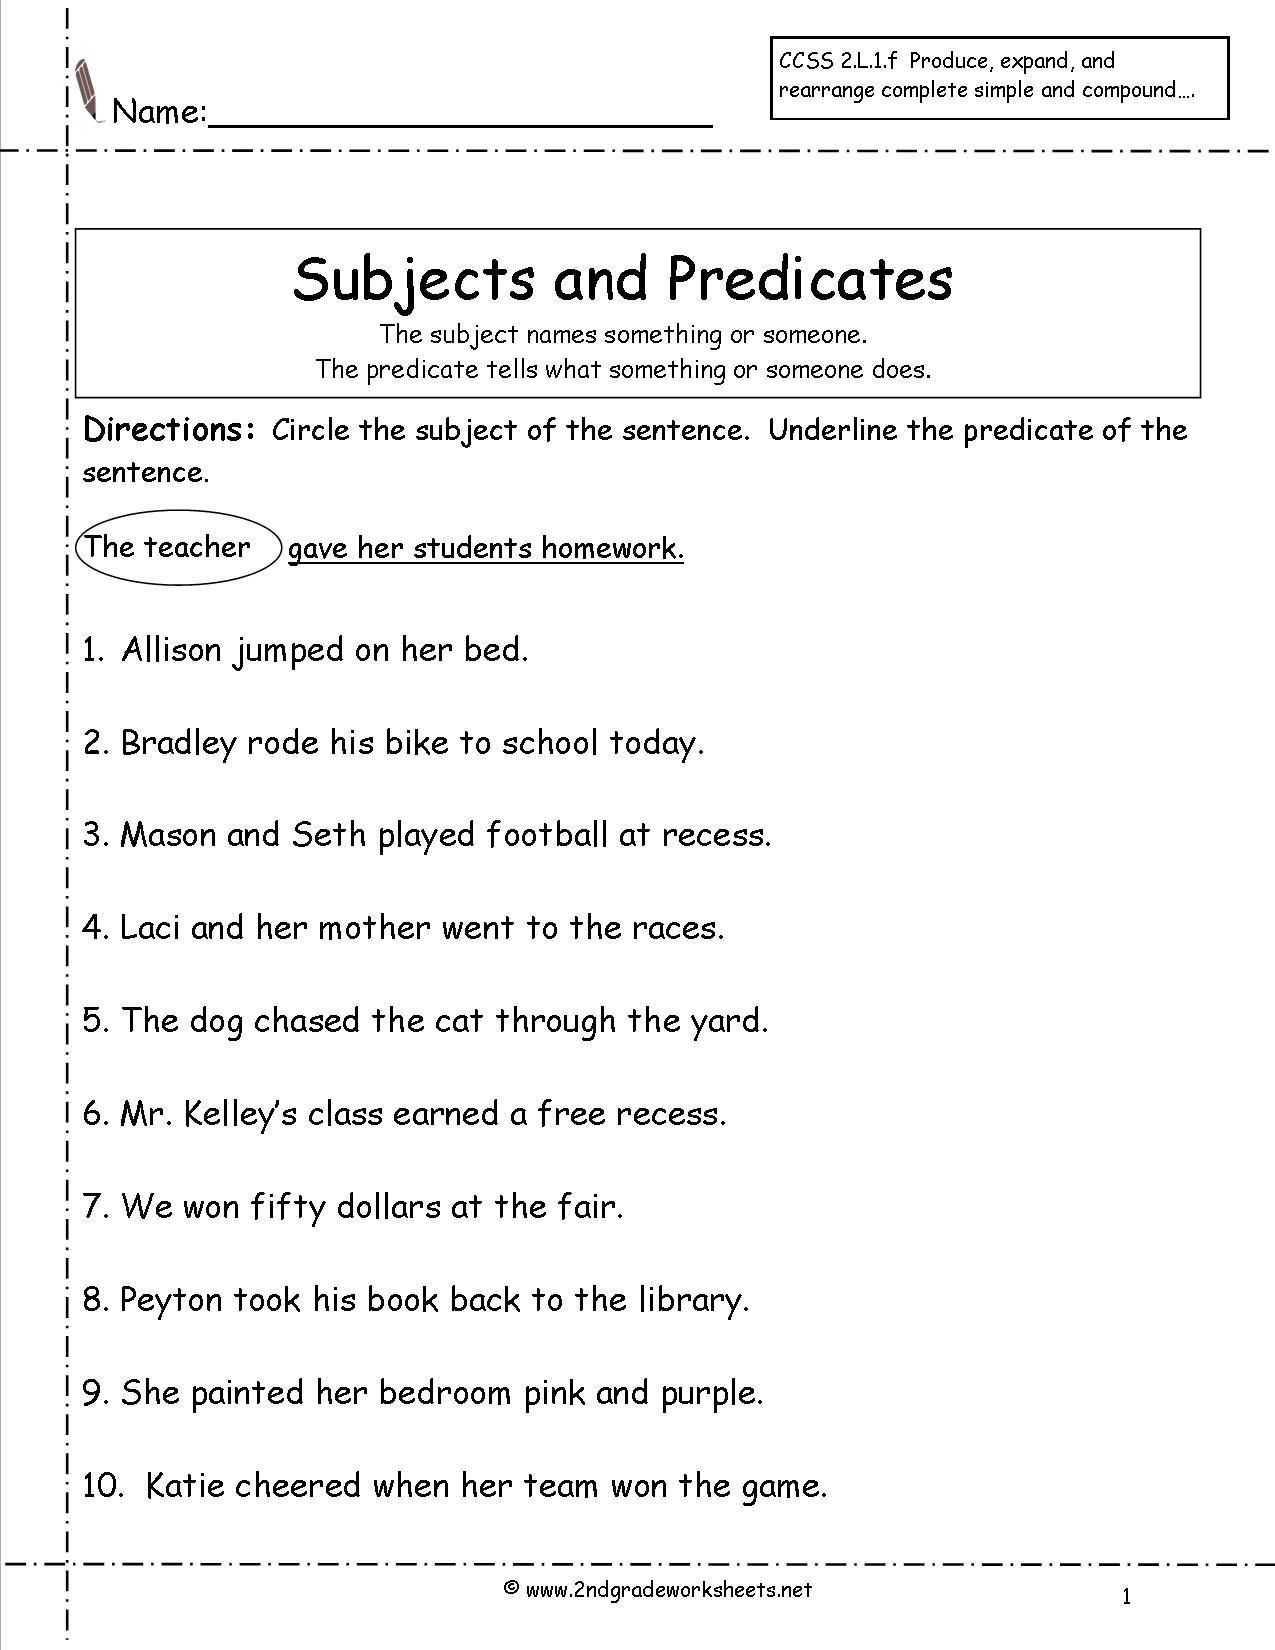 Subject Predicate Worksheet Pdf Subject Predicate Worksheets 2nd Grade Google Search